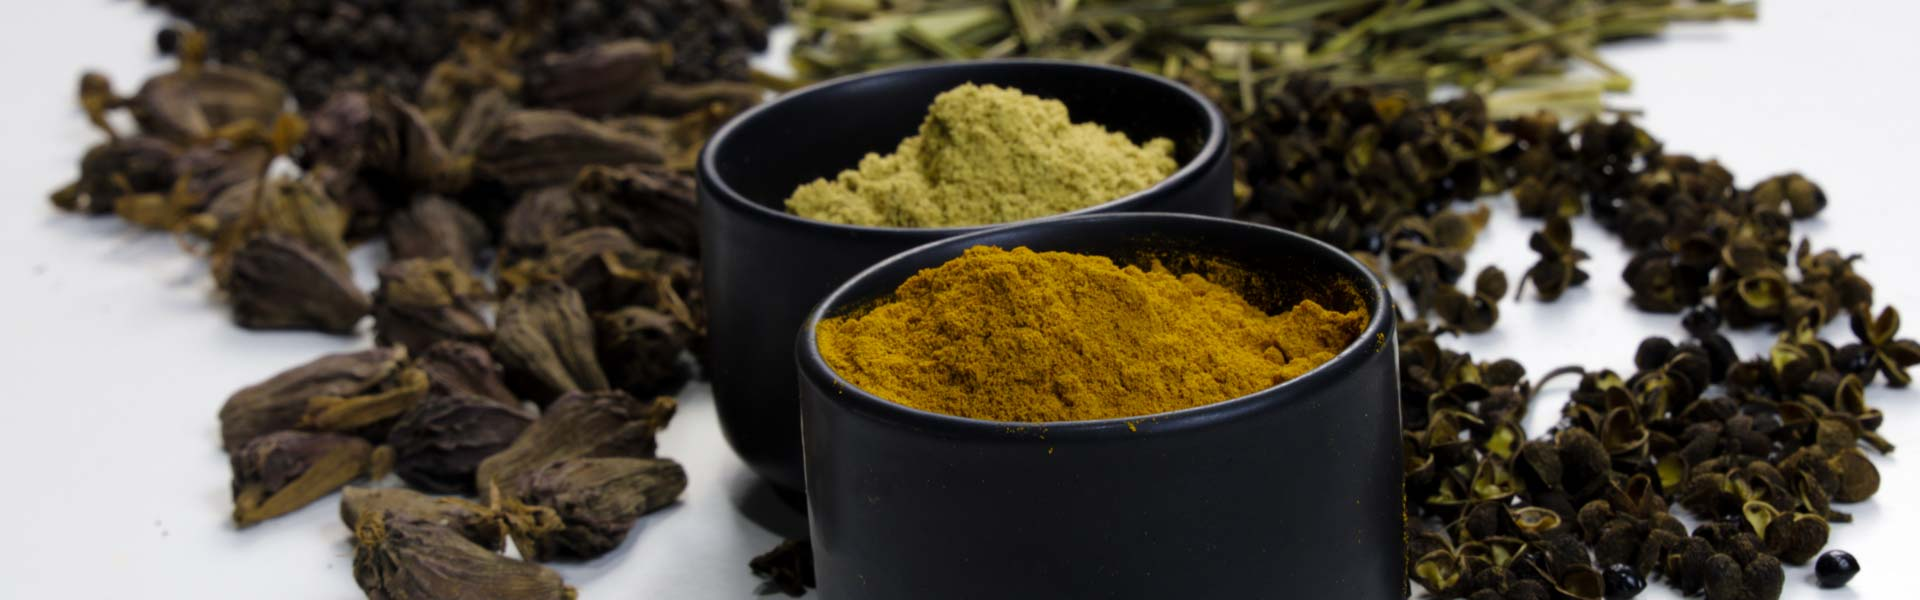 Why Spices and herbs are natural sources of antioxidants